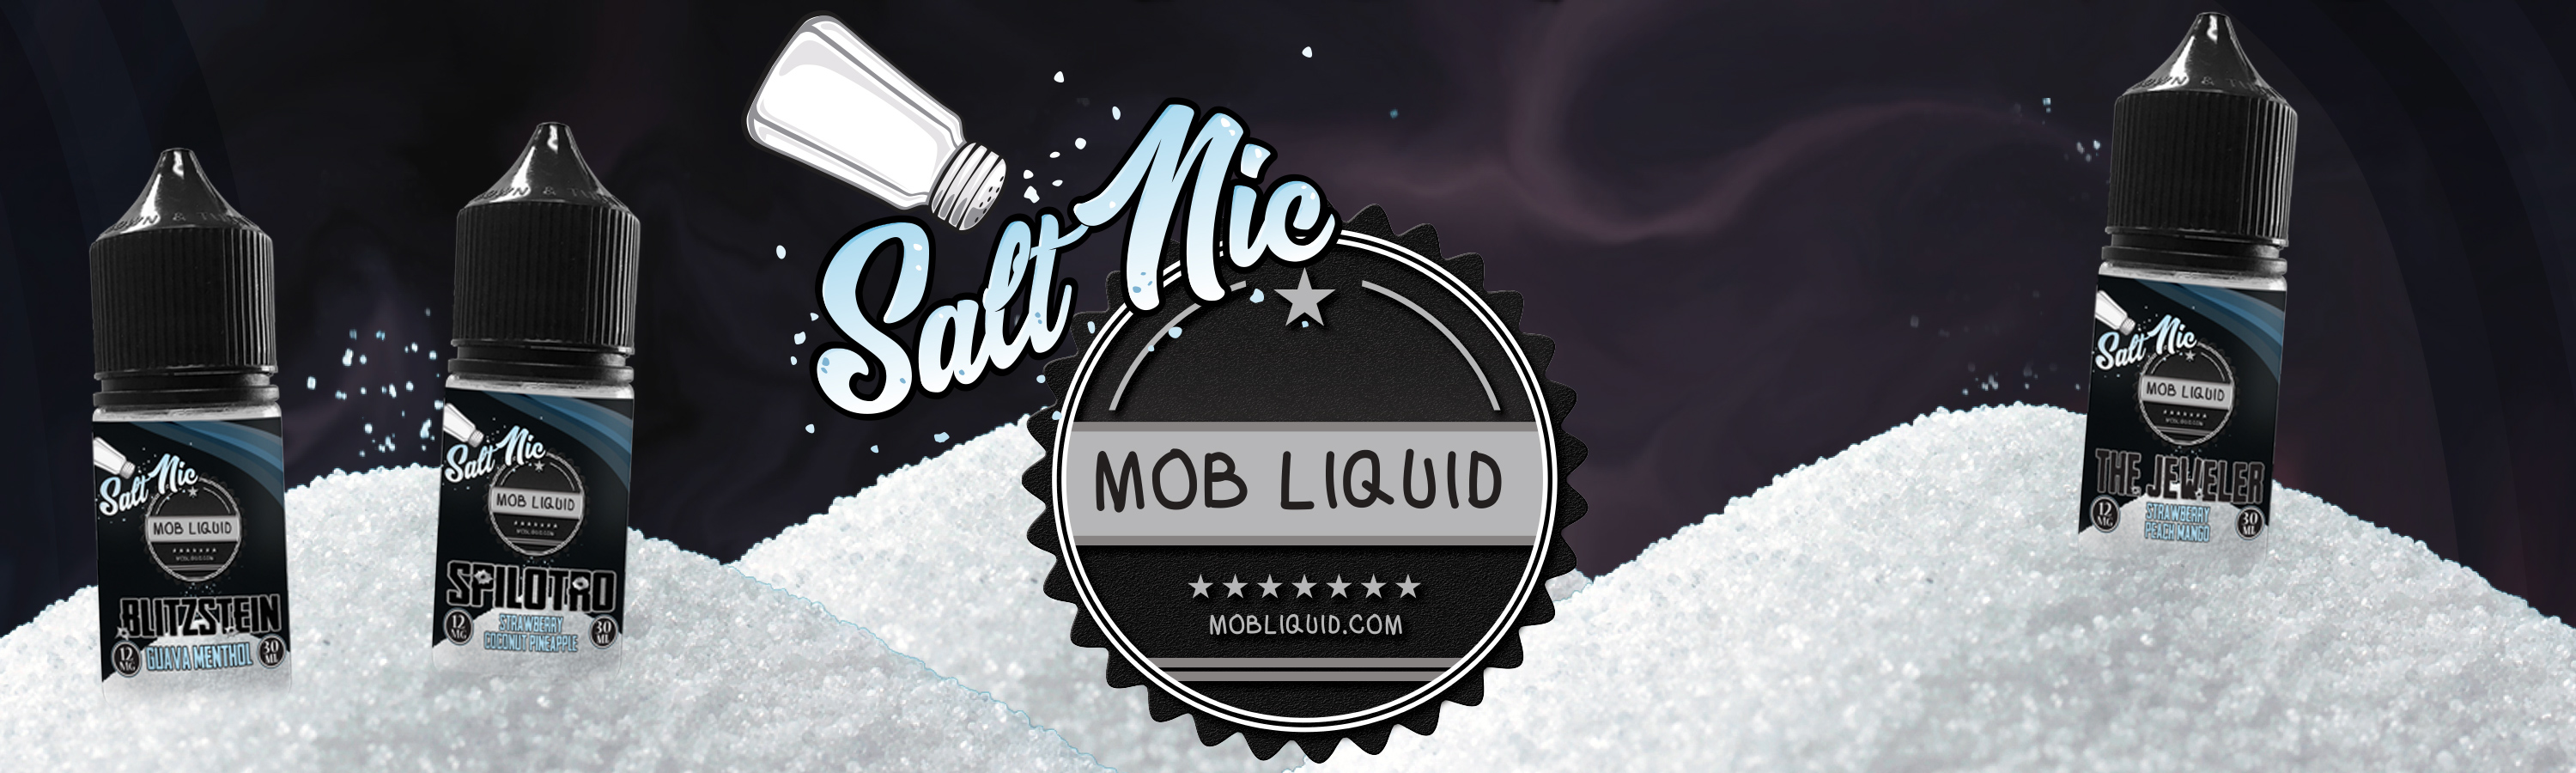 https://www.flavoreliquid.com/Vape-Juice/Salt-Nic-Mob